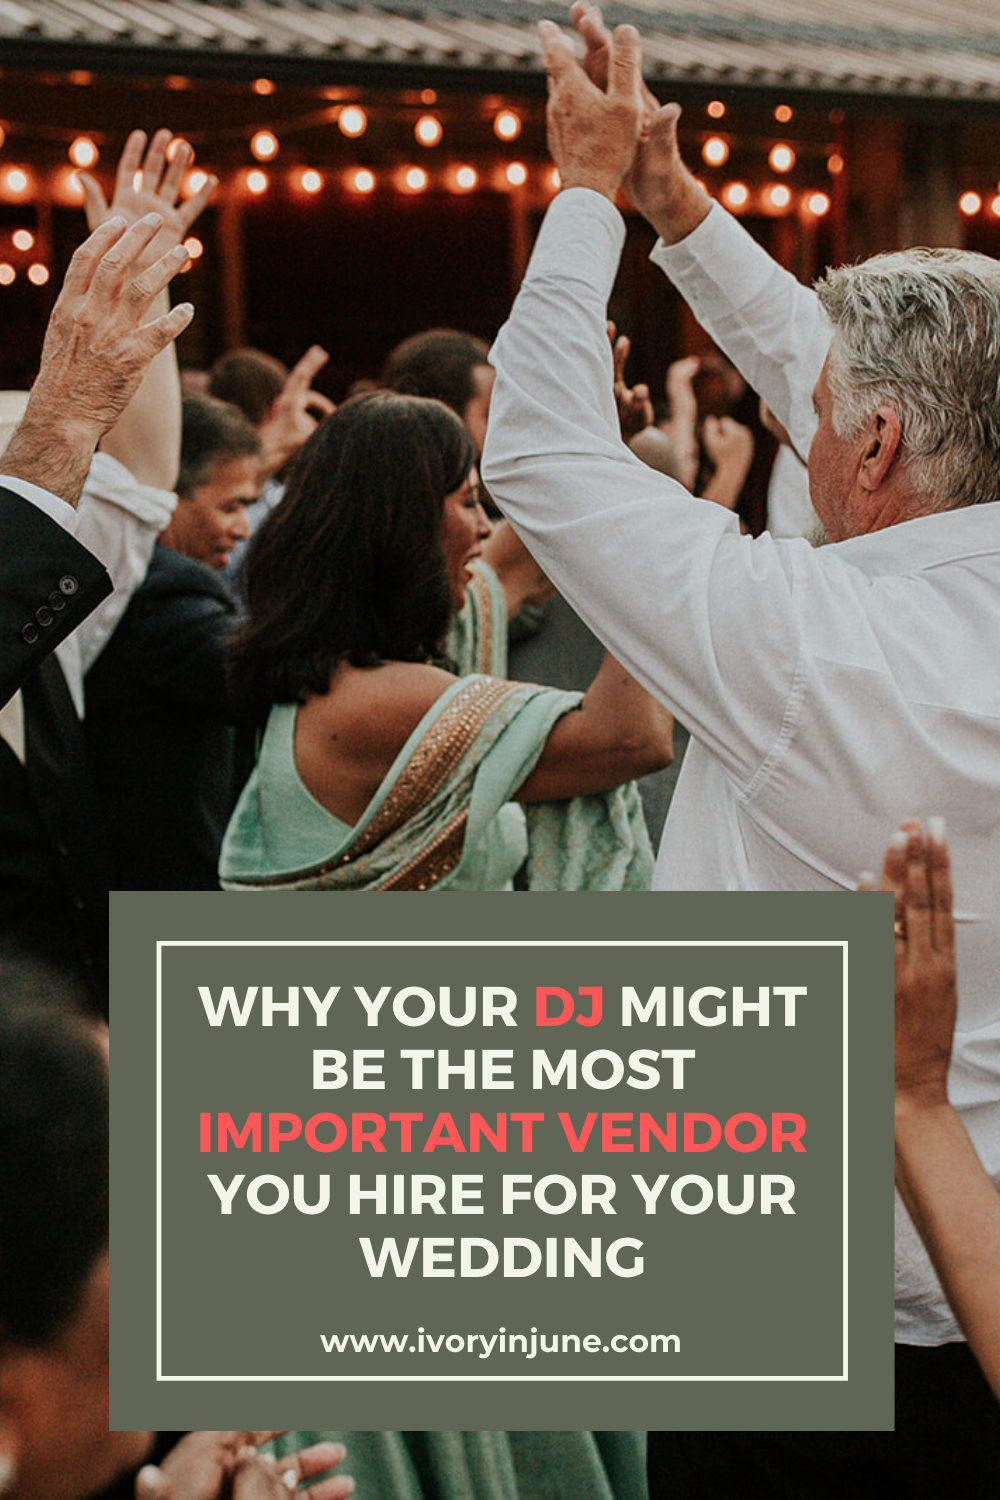 Here's why your wedding Dj might be the most important wedding vendor you hire! #weddingdj #weddingplanning